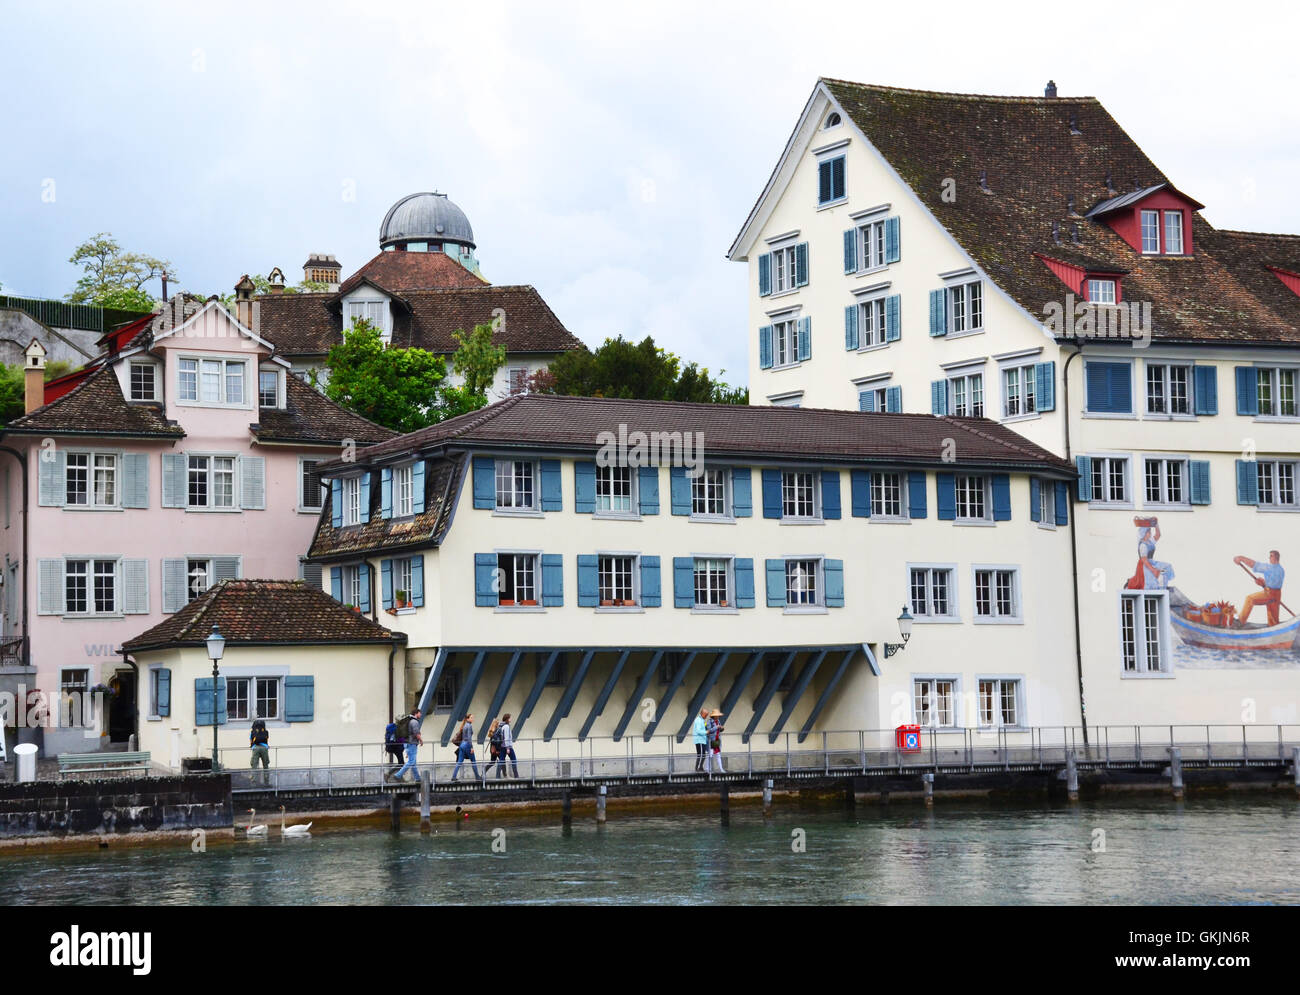 View of Zurich with Limmat river, Switzerland. - Stock Image